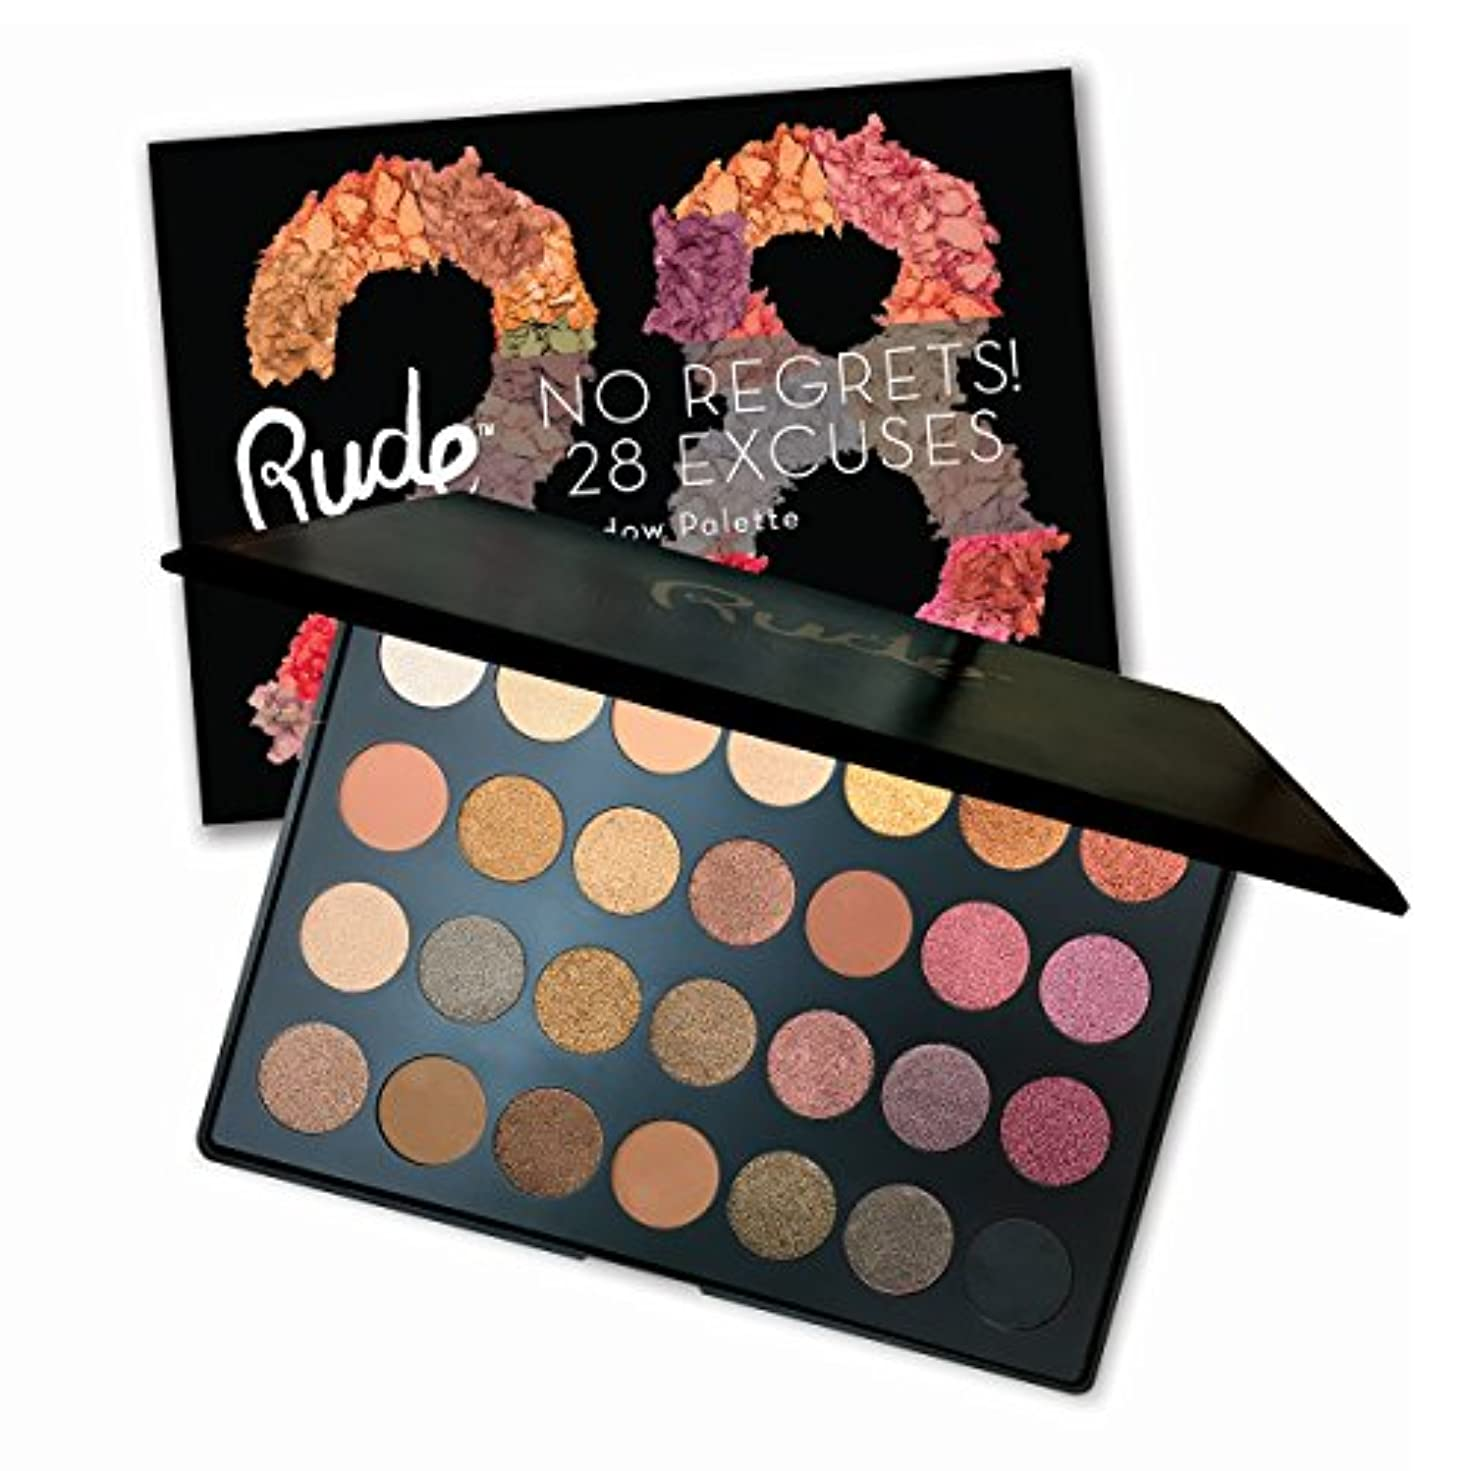 可決面白い典型的なRUDE No Regrets! 28 Excuses Eyeshadow Palette - Scorpio (並行輸入品)